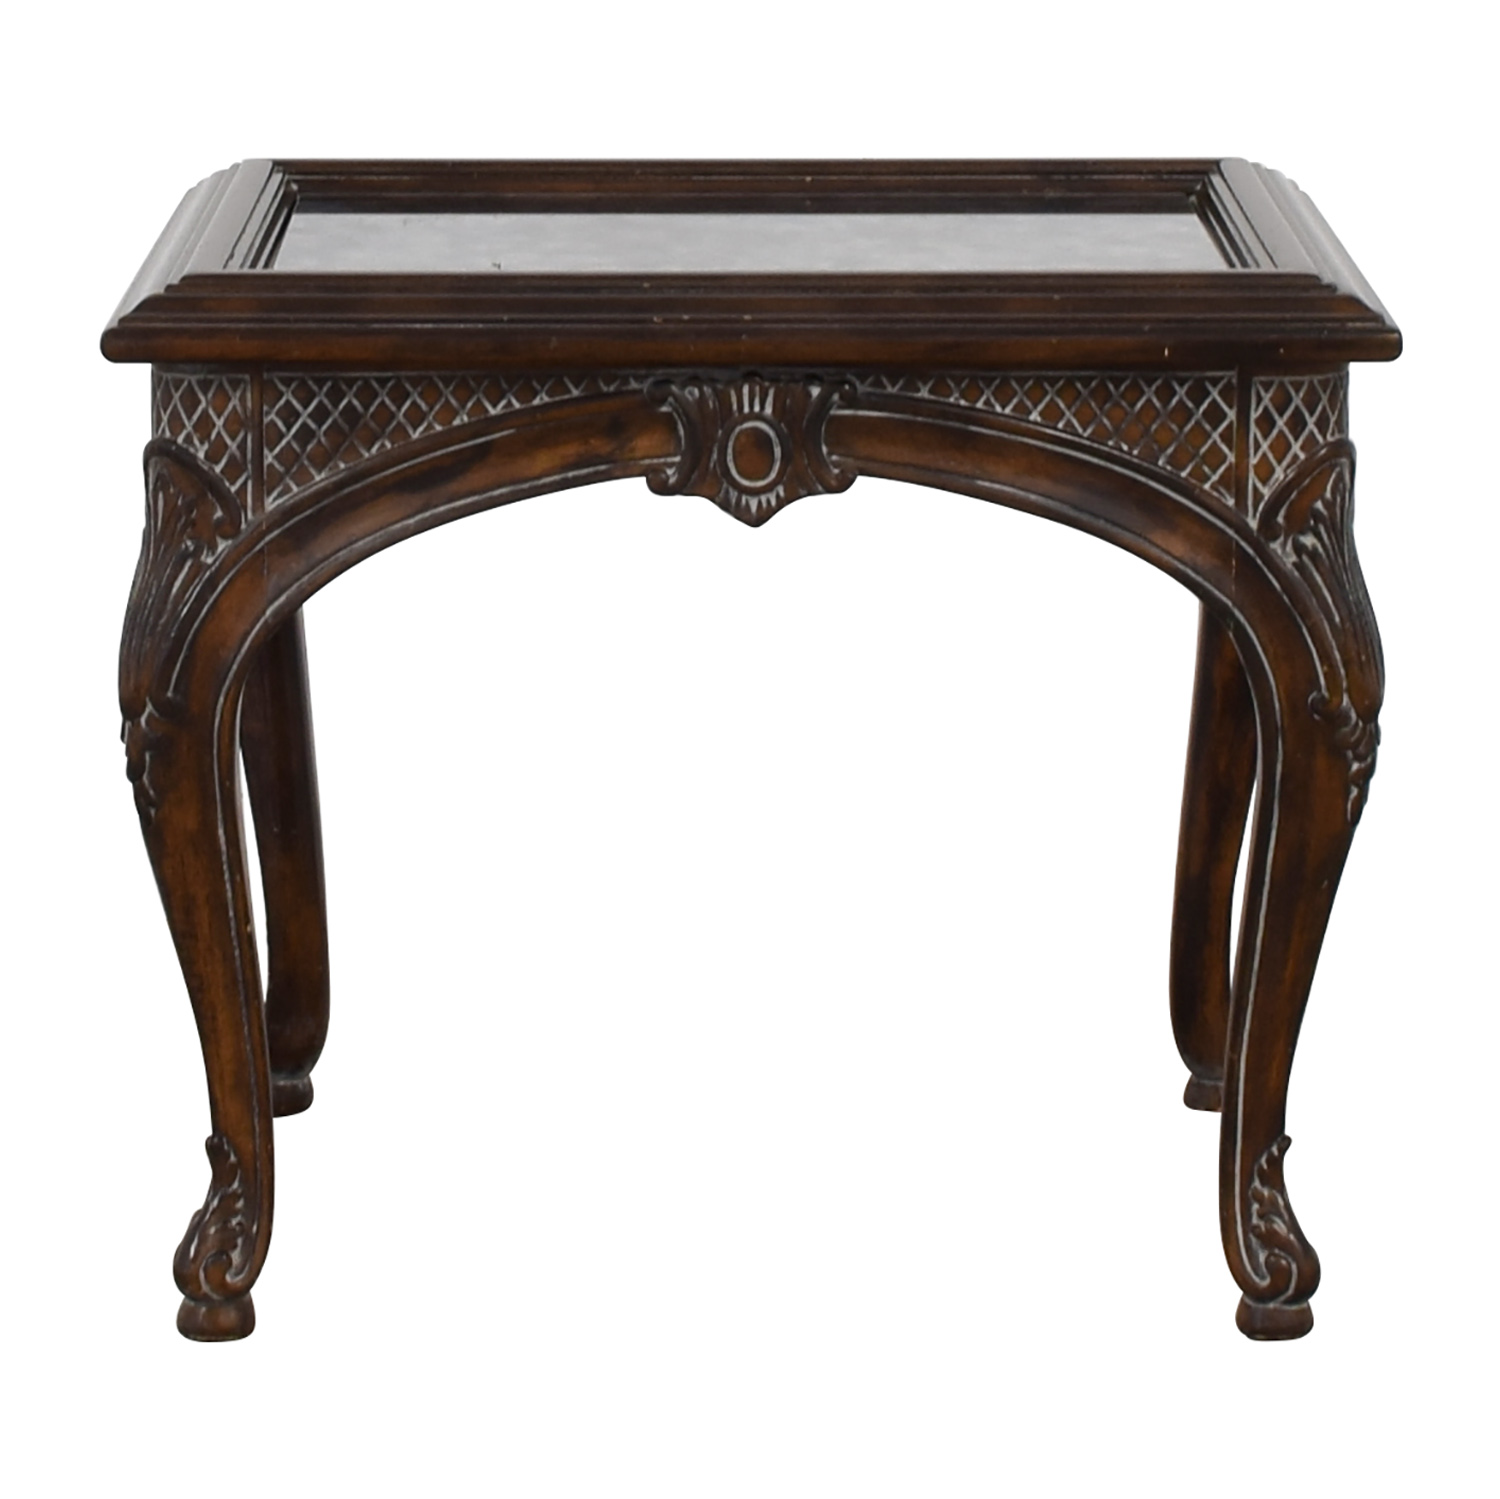 Antique Mirrored Ebony Wood Carved Side Table price